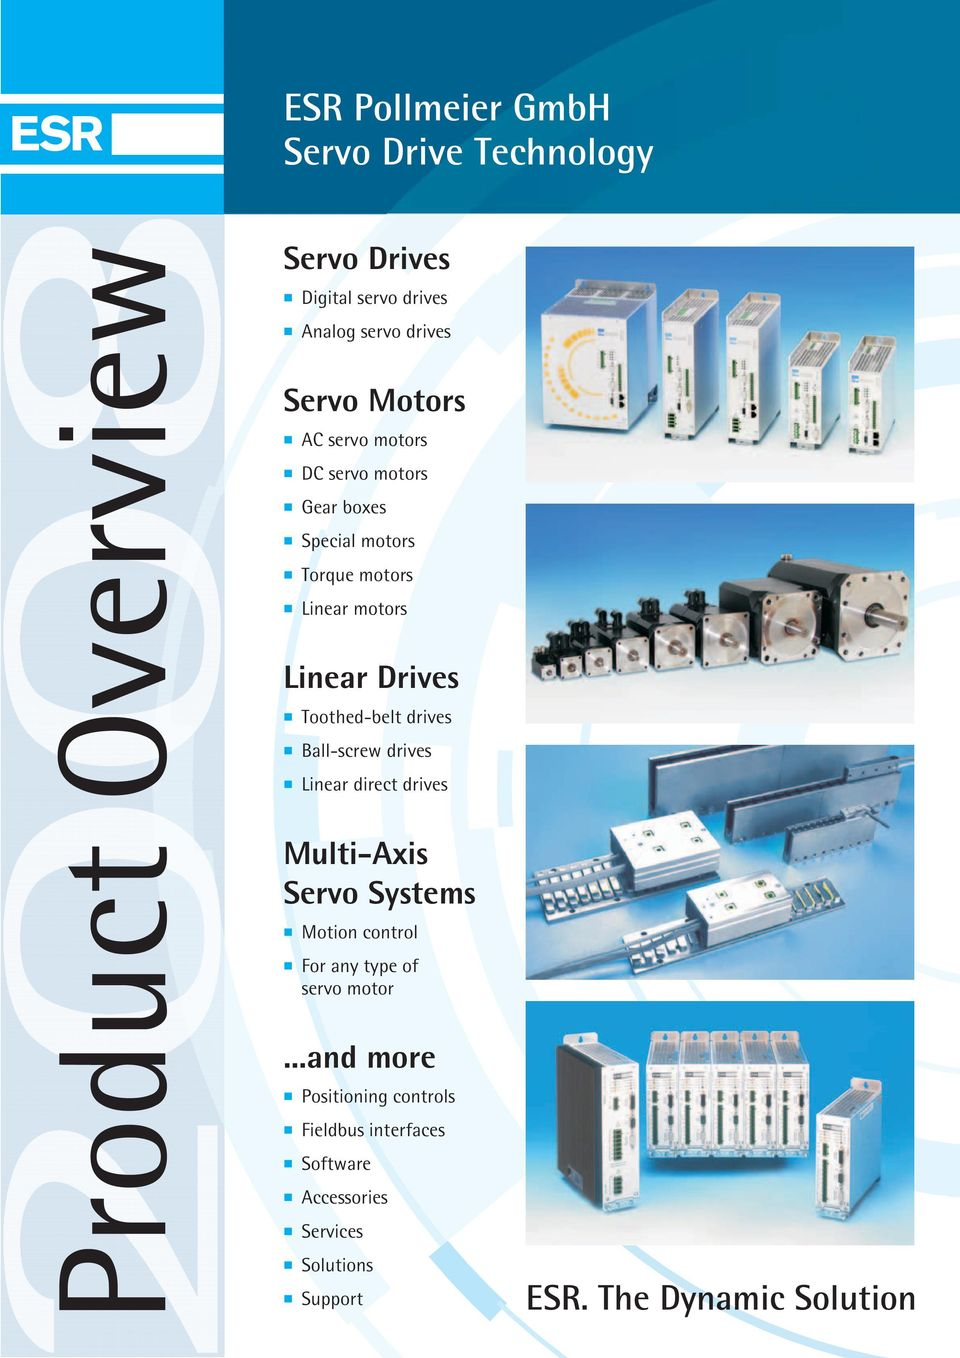 Linear Drives Motion control For any type of servo motor.